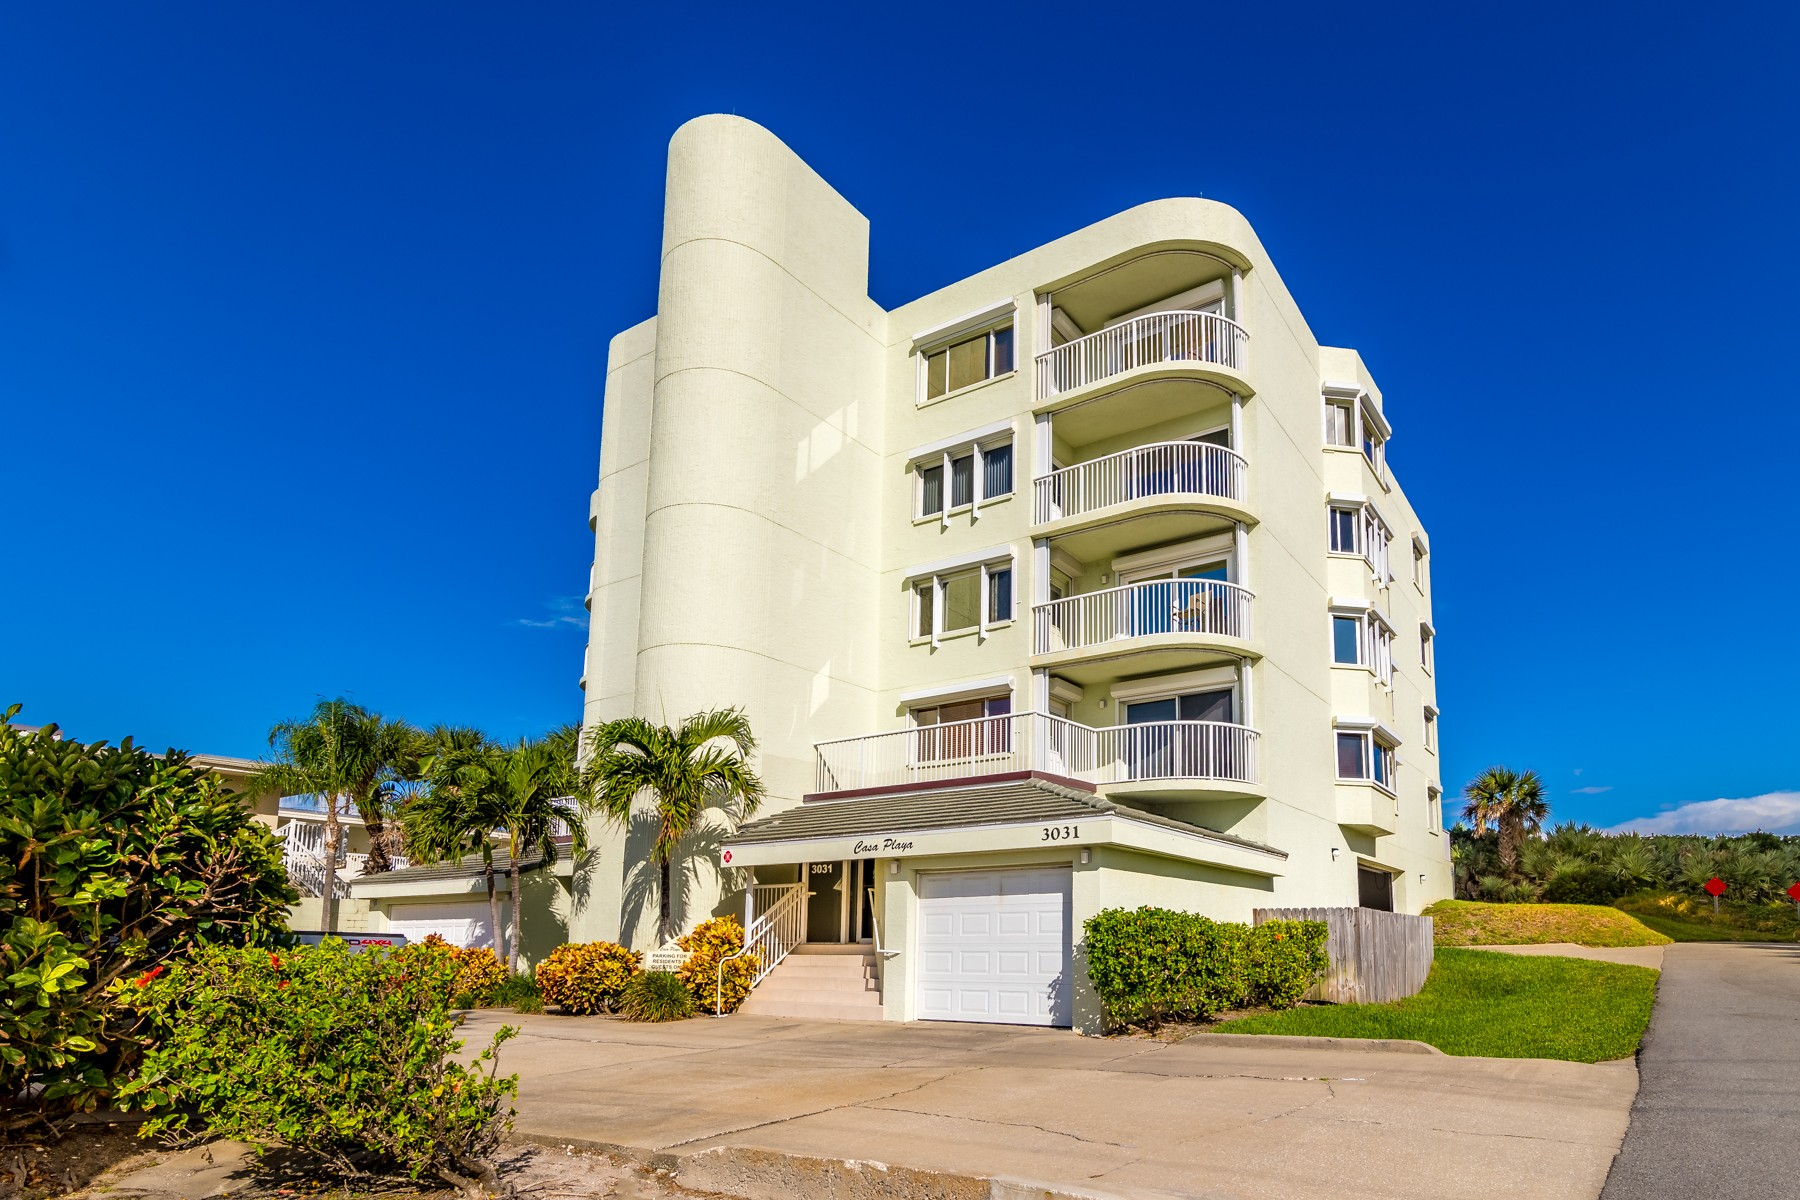 Additional photo for property listing at Casa Playa 3031 South Atlantic Avenue #103 Cocoa Beach, Florida 32931 United States